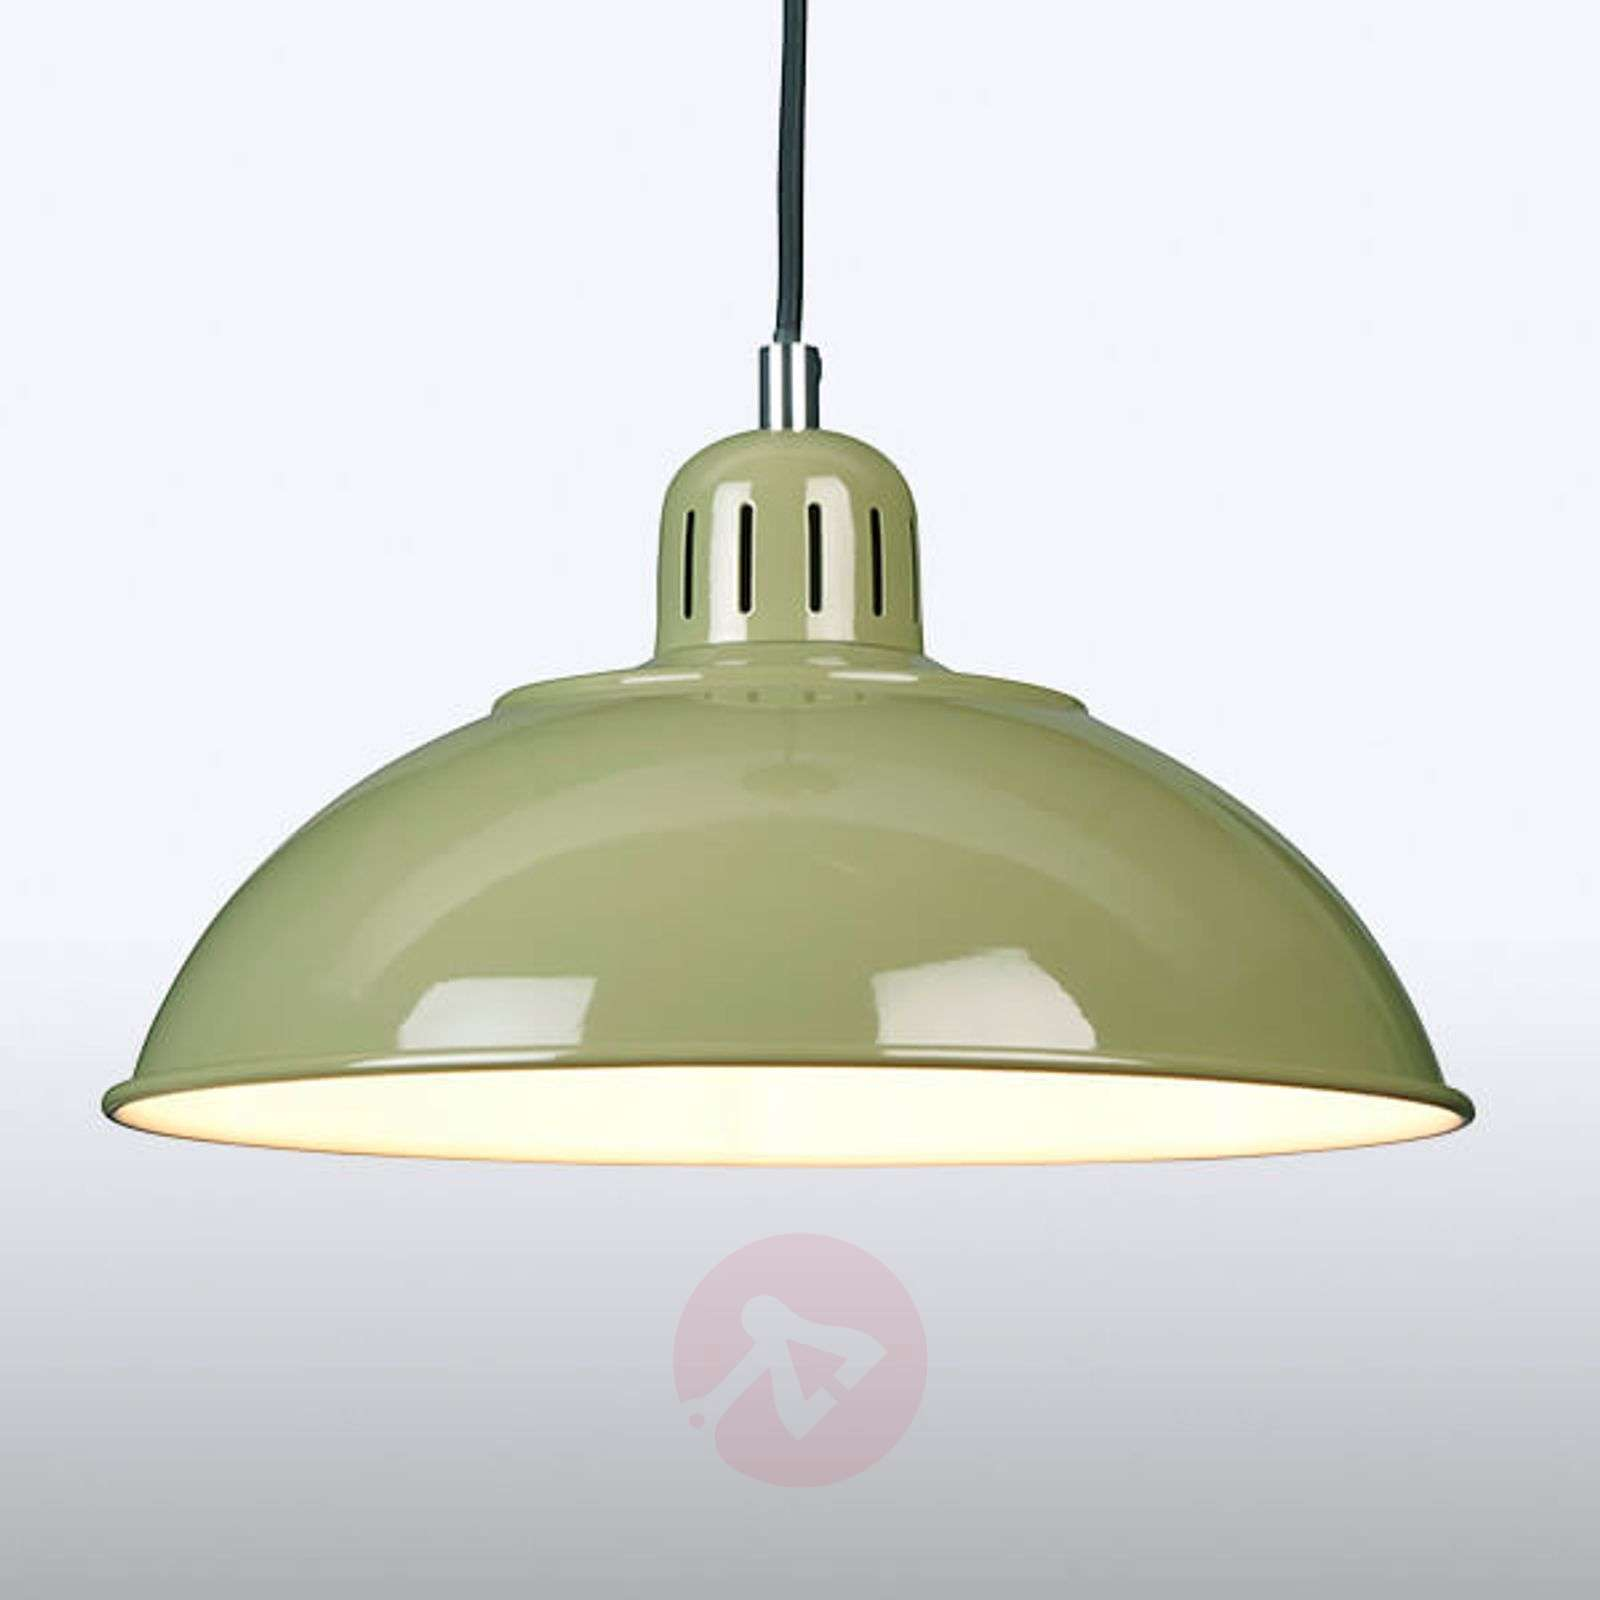 Green Pendant Light Franklin In A Retro Style